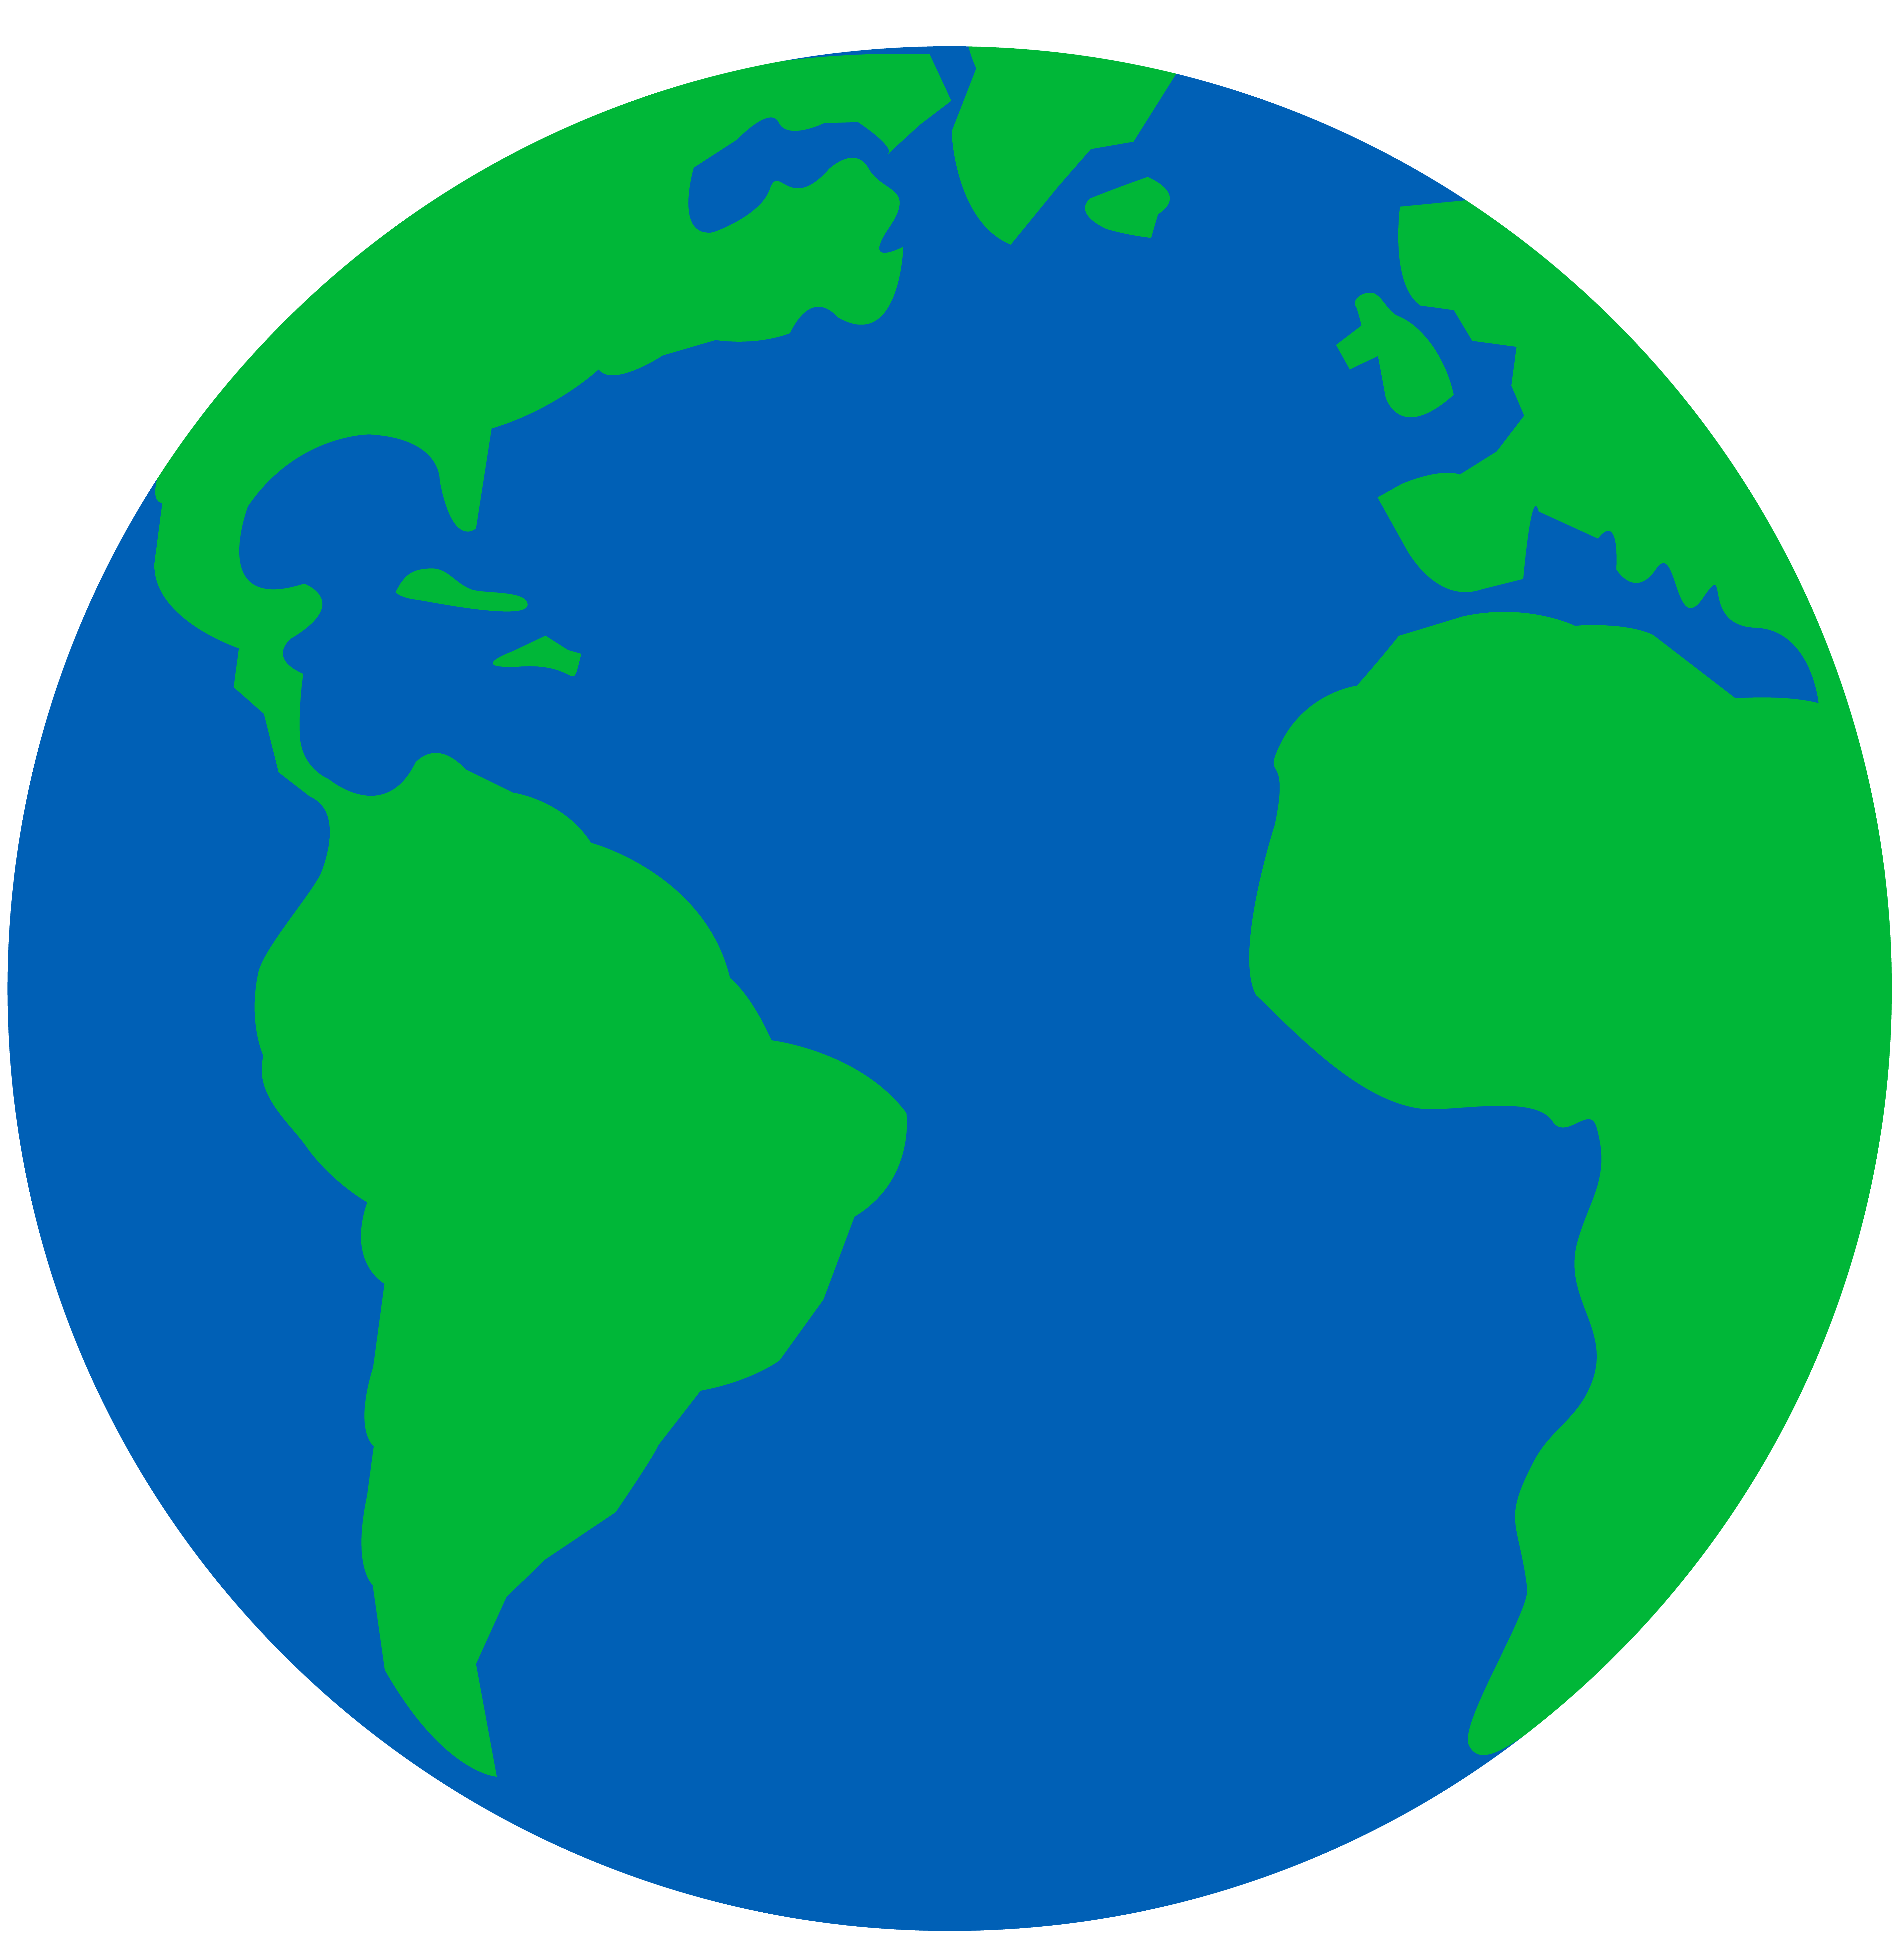 Green earth clipart free images 2